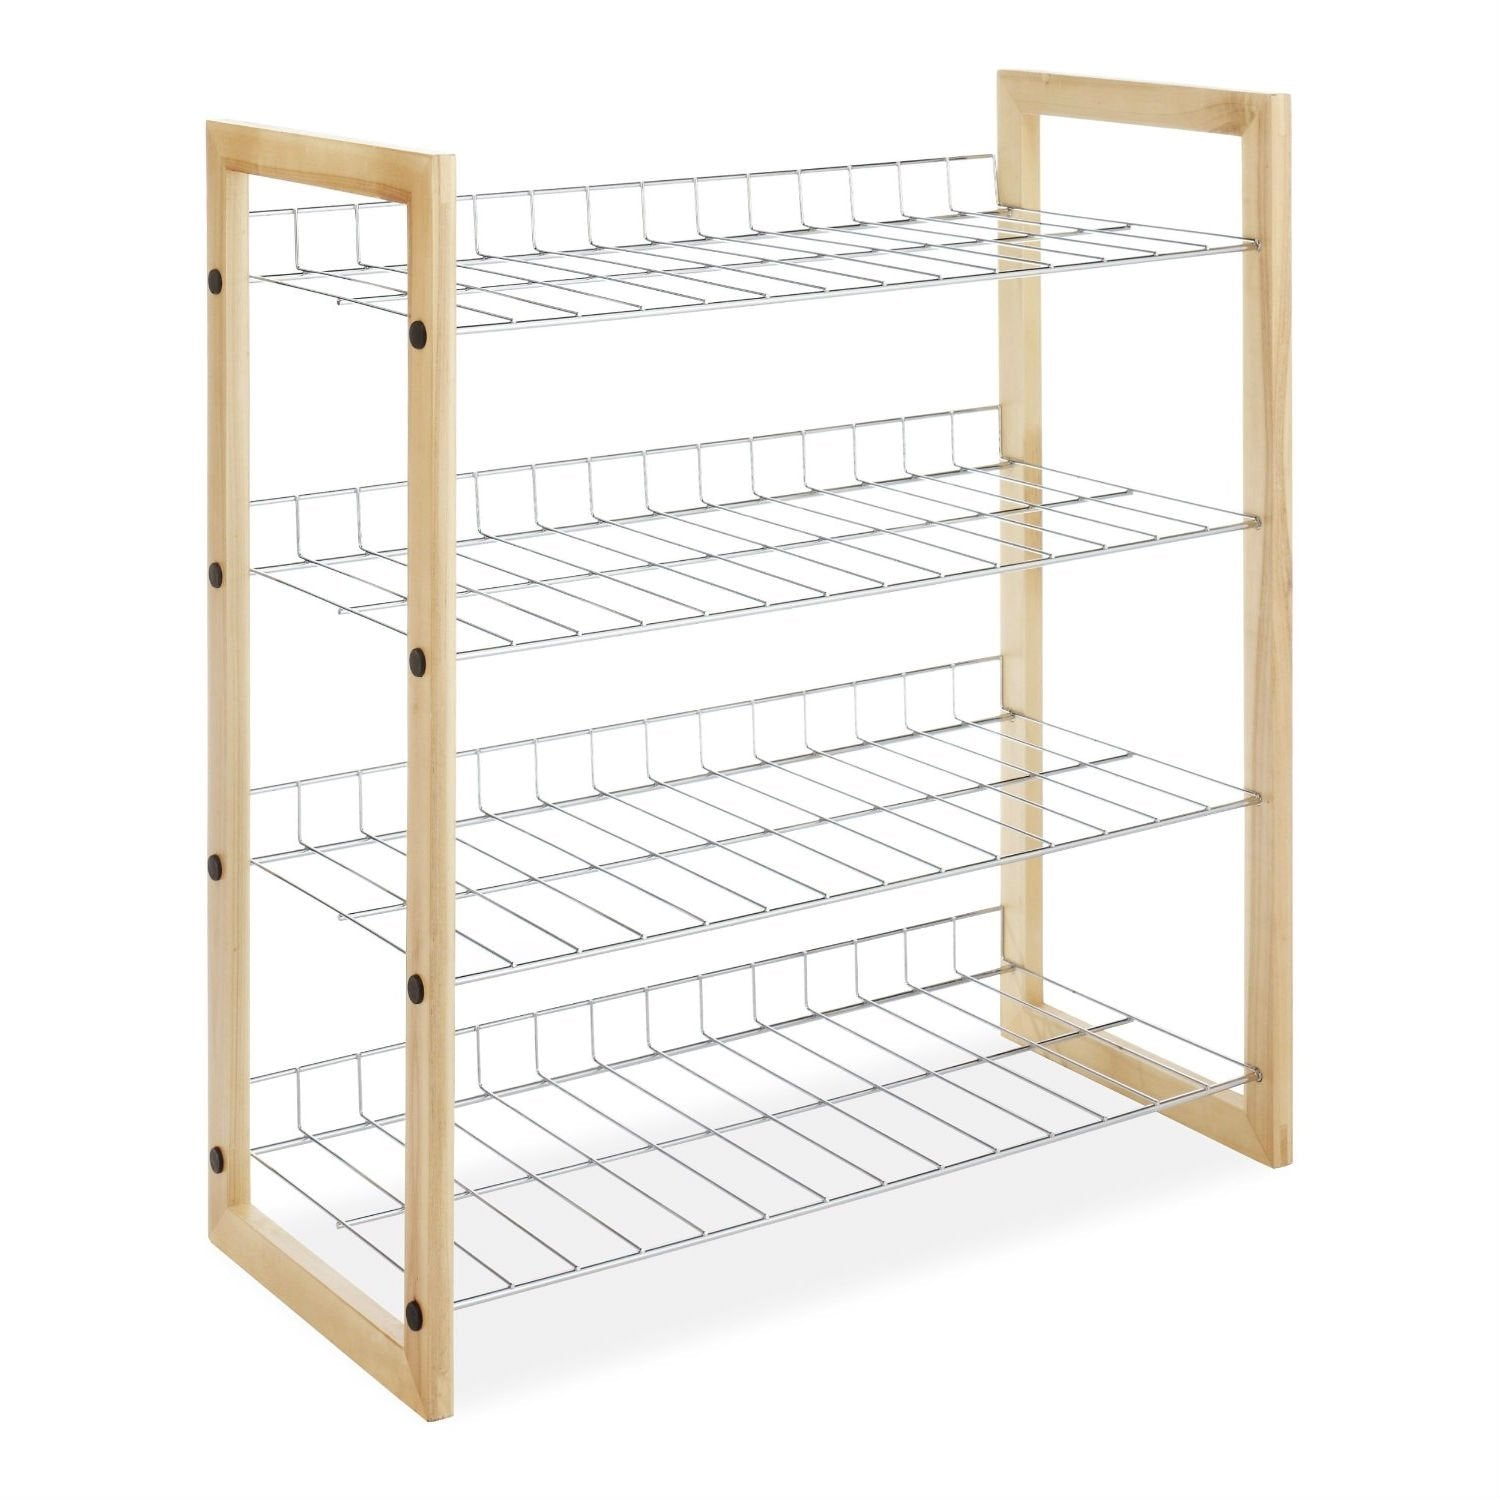 4-Shelf Closet Shoe Rack with Natural Wood Frame and Chrome Wire Shelves